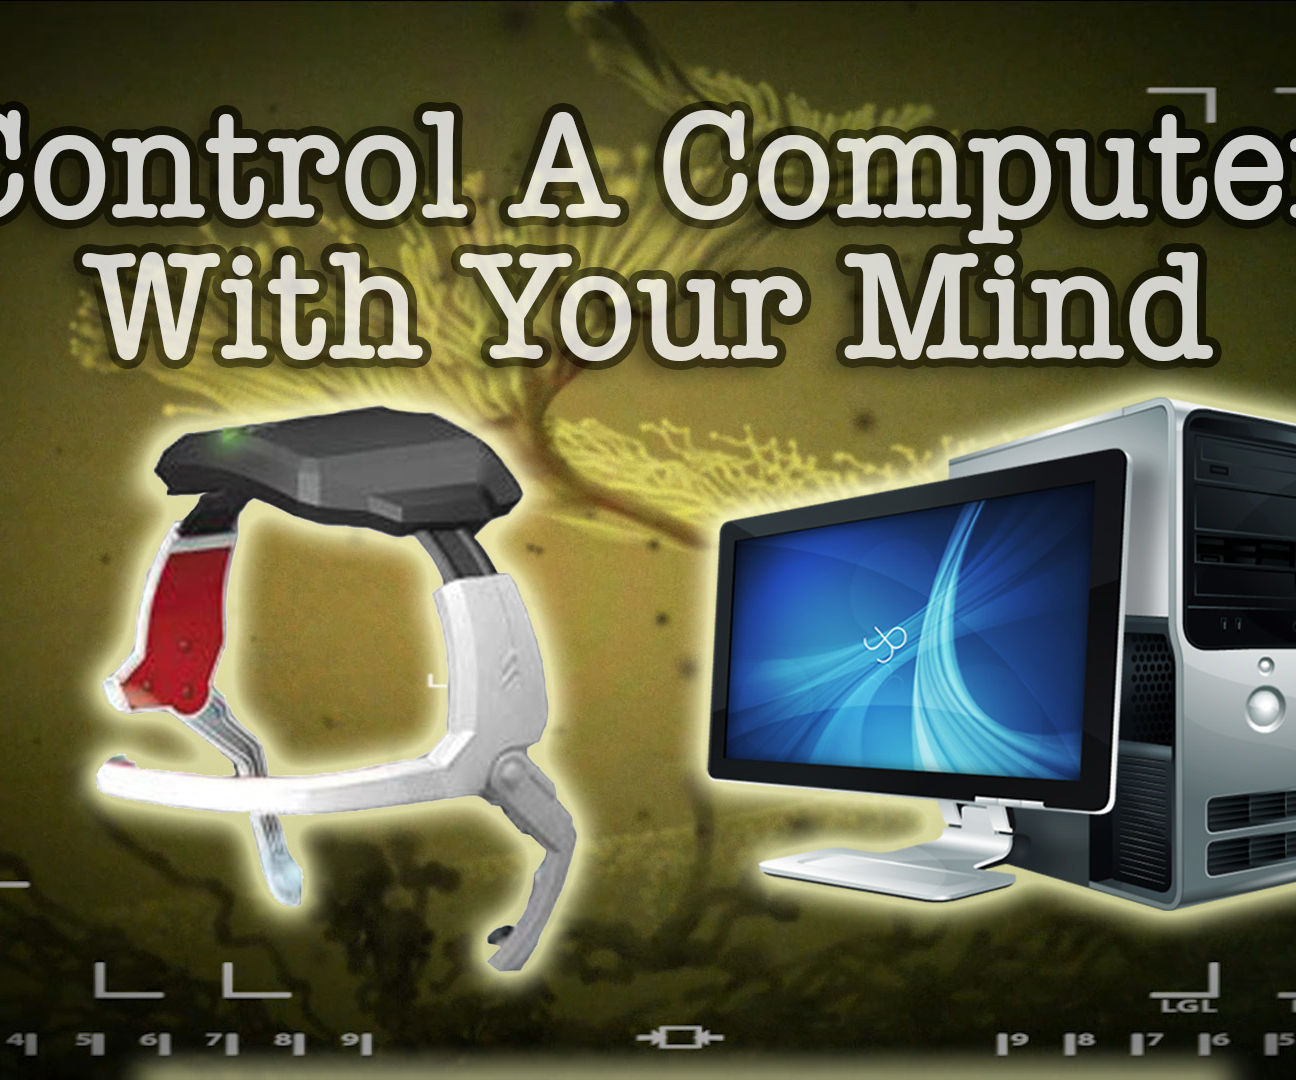 Control A Computer With Your Mind!